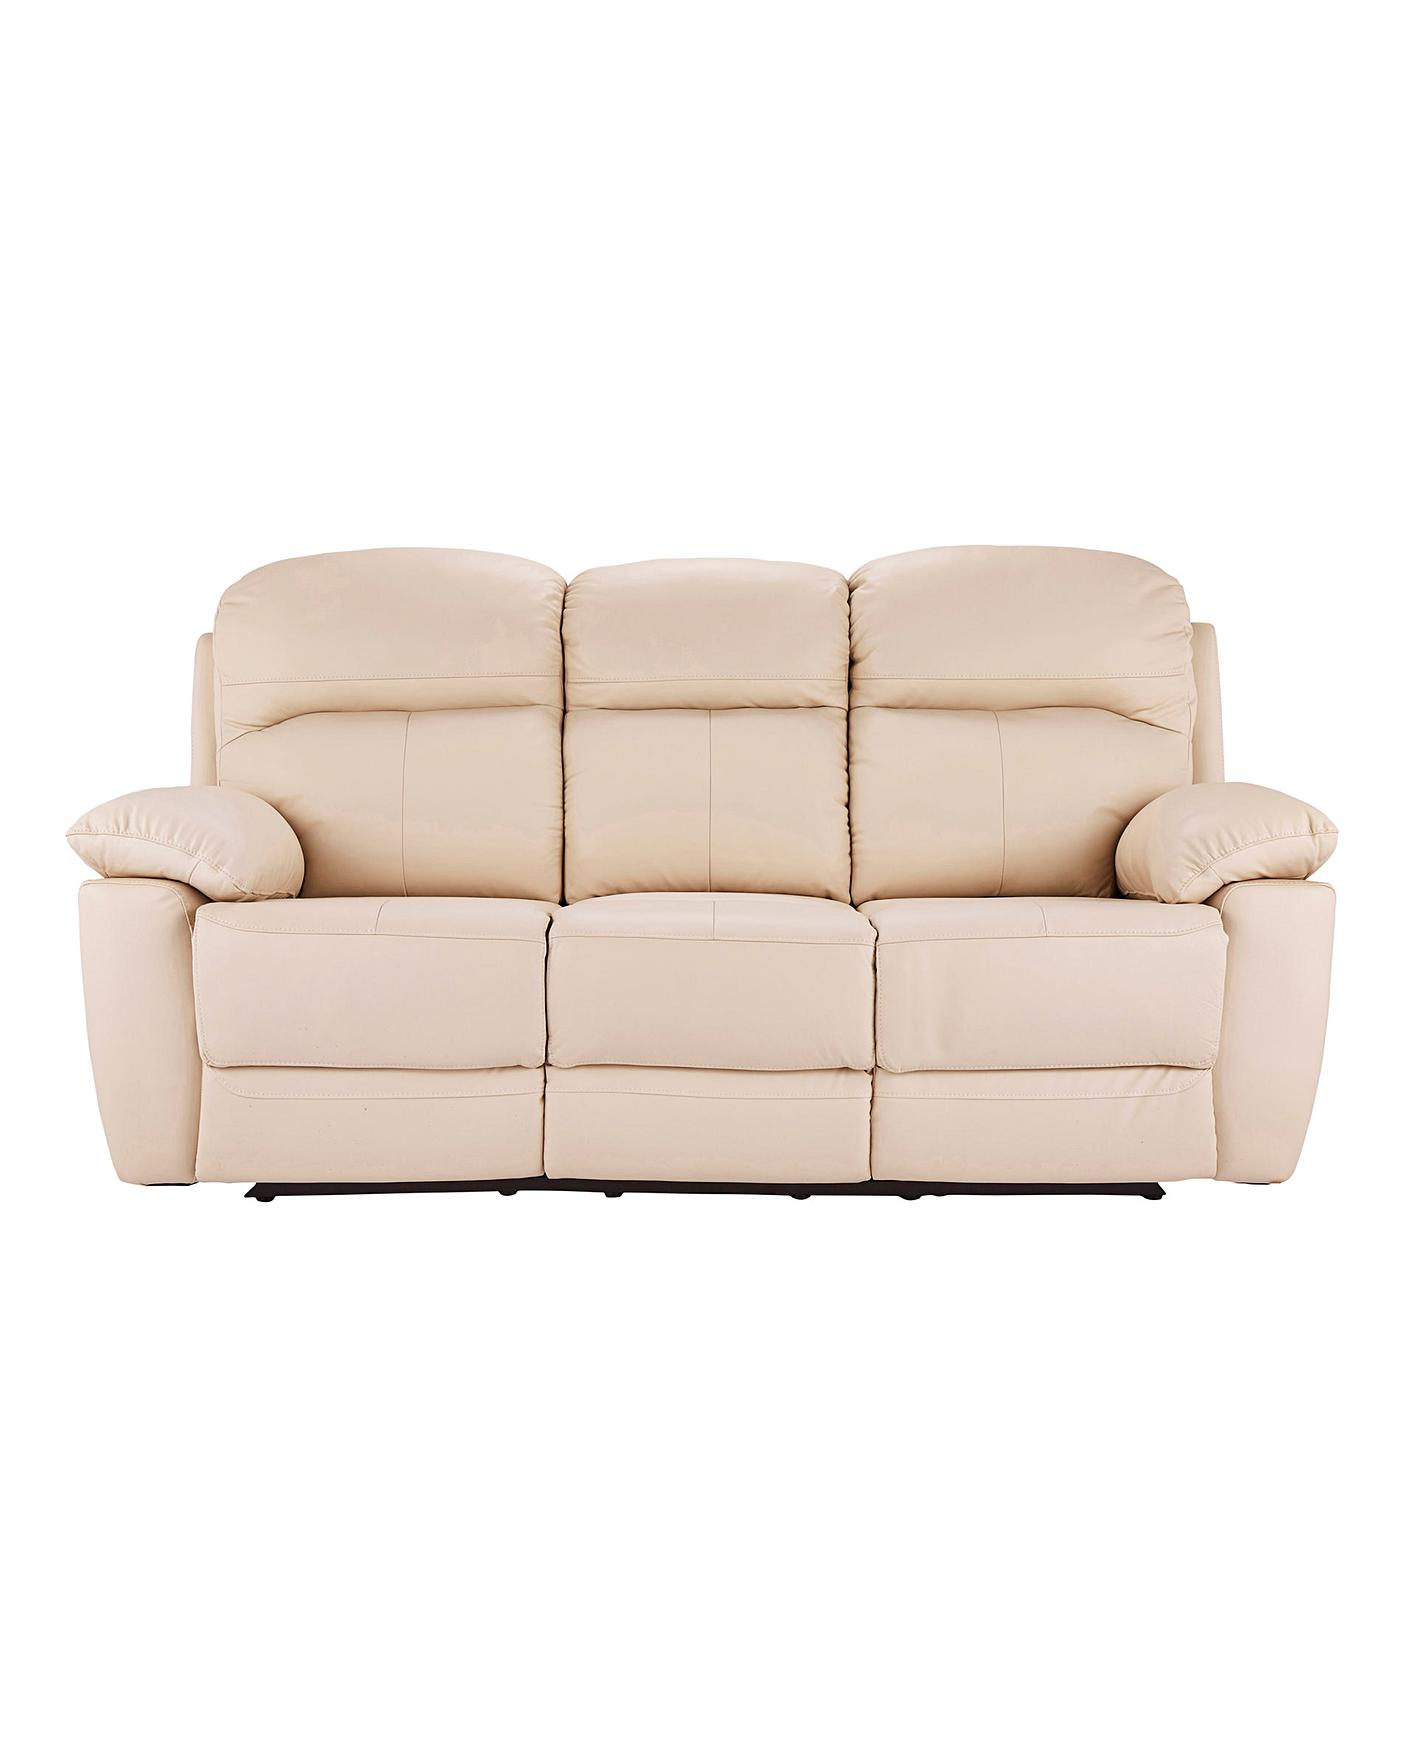 Roma Leather Recliner Three Seater Sofa J D Williams